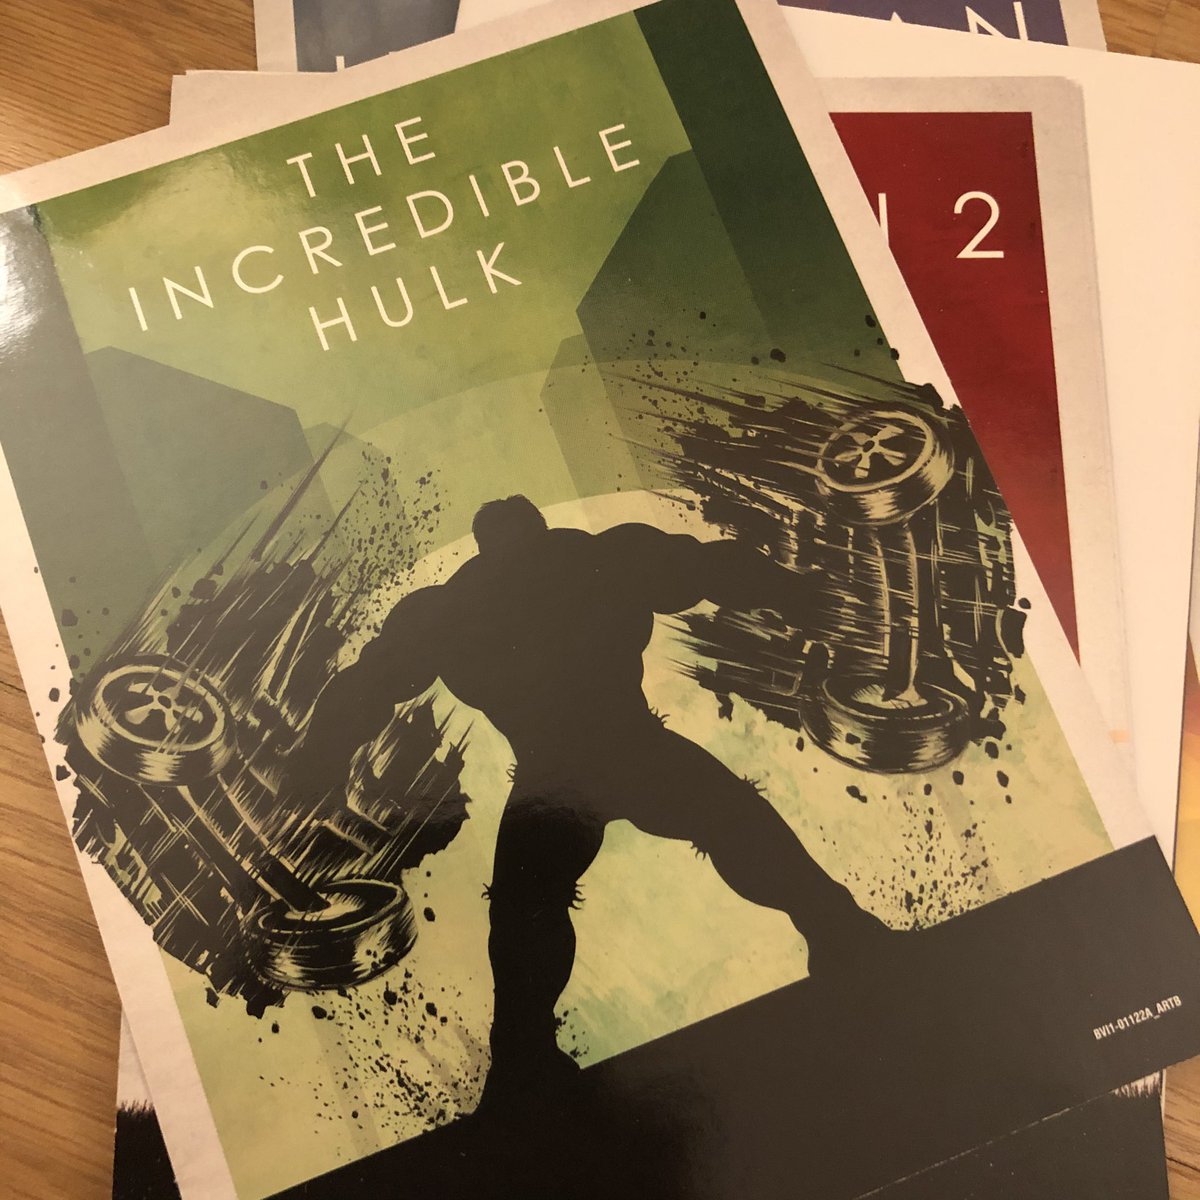 Okay, day 2 of my #mcu movie marathon! Time for #TheIncredibleHulk! I don't think I've seen this before so should be interesting. Come on Hulk, let's see you smash! #hulksmash #moviemarathon #lockdown<br>http://pic.twitter.com/MR8egmageA